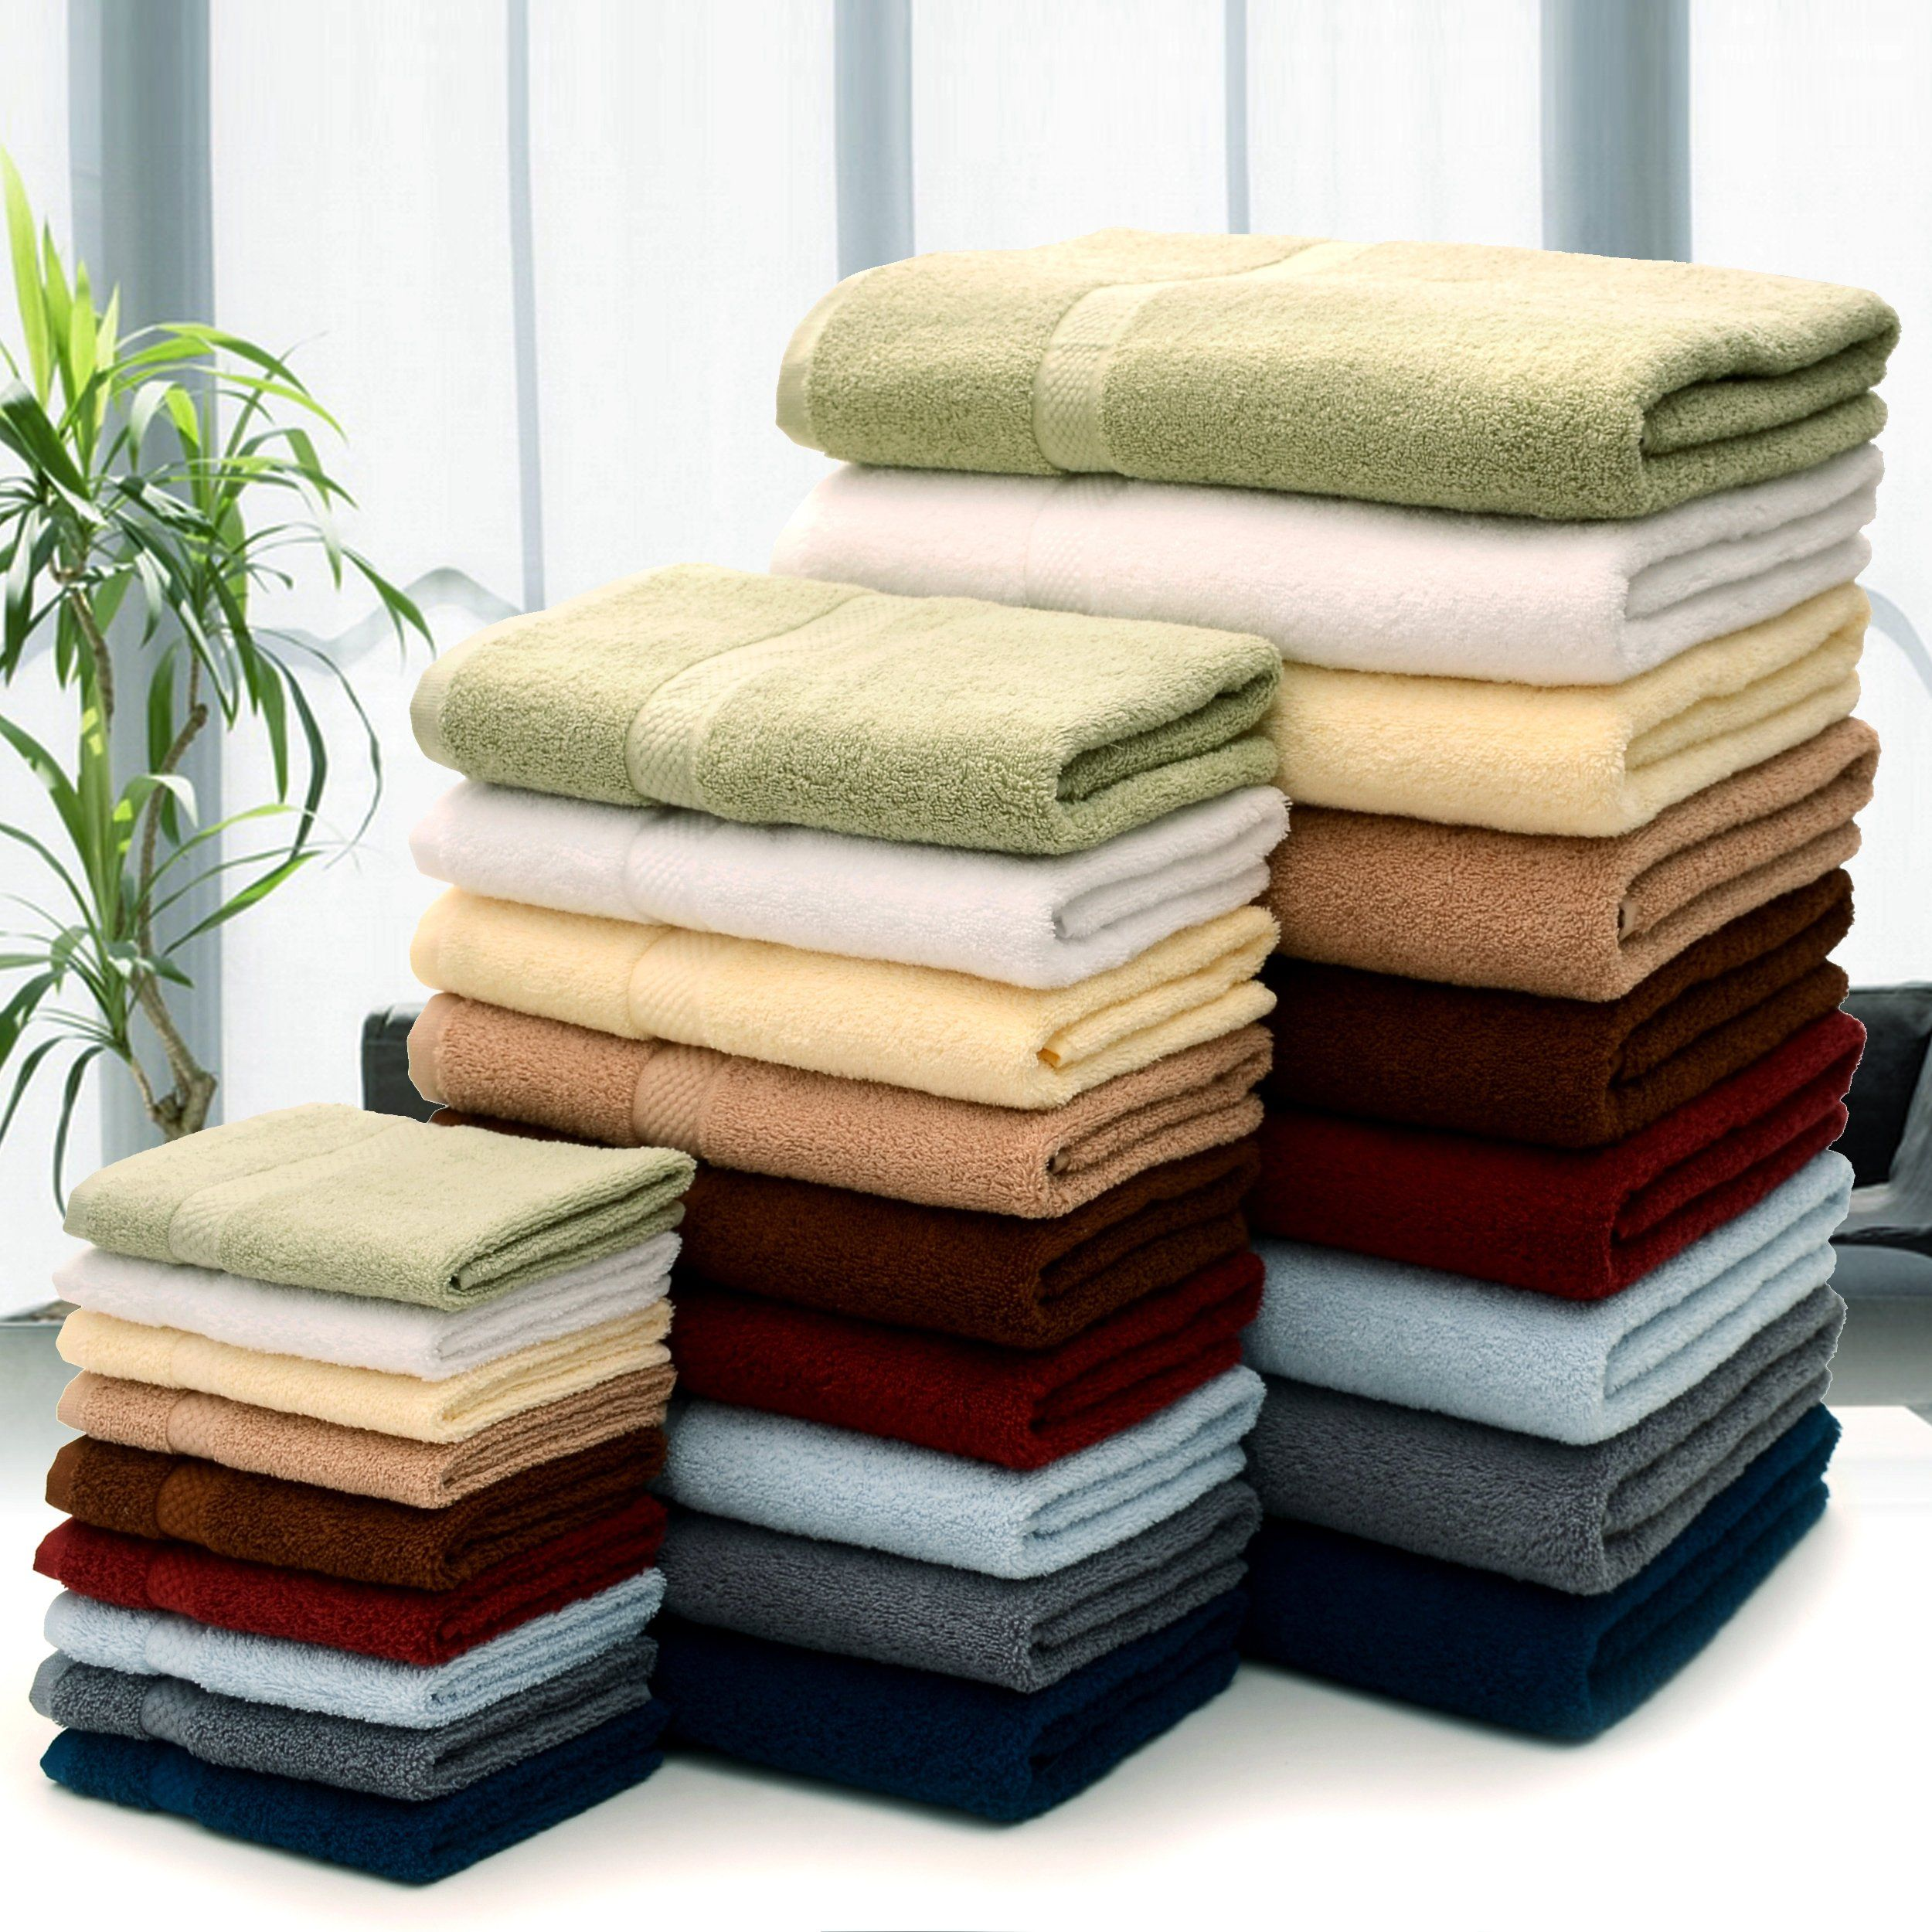 You Can T Go Wrong With Quality Luxurious Bath Towels Reveal The Simple Joy Of Stepping Out From The Shower Colorful Bath Green Bathroom Accessories